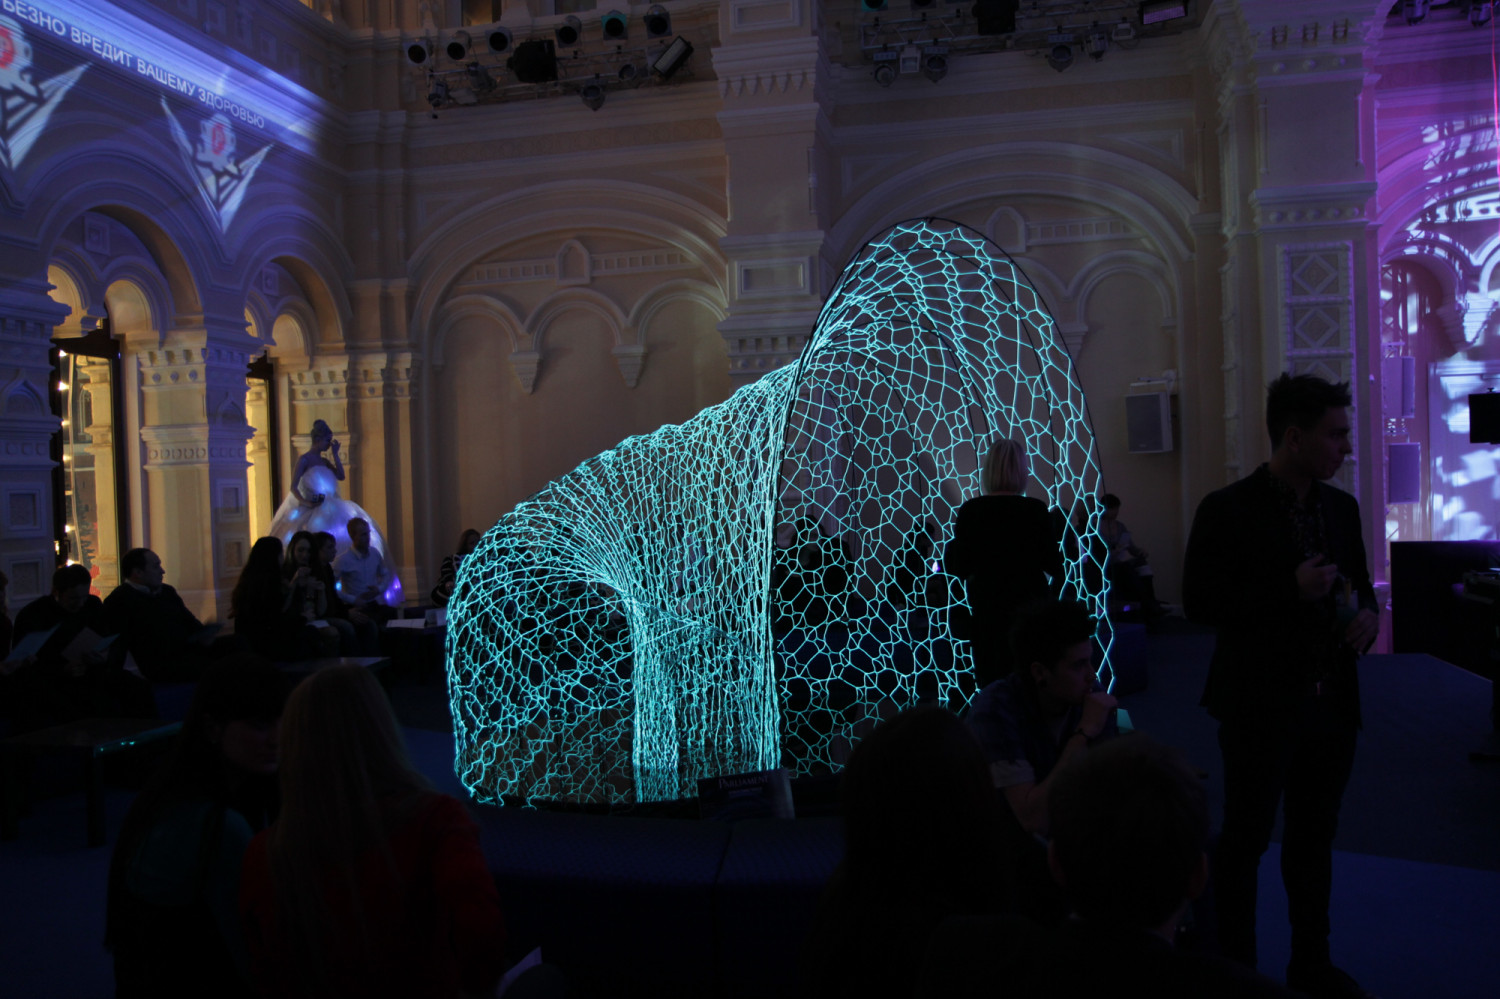 A generative, emergent light and sound environment with a luminous and responsive growth